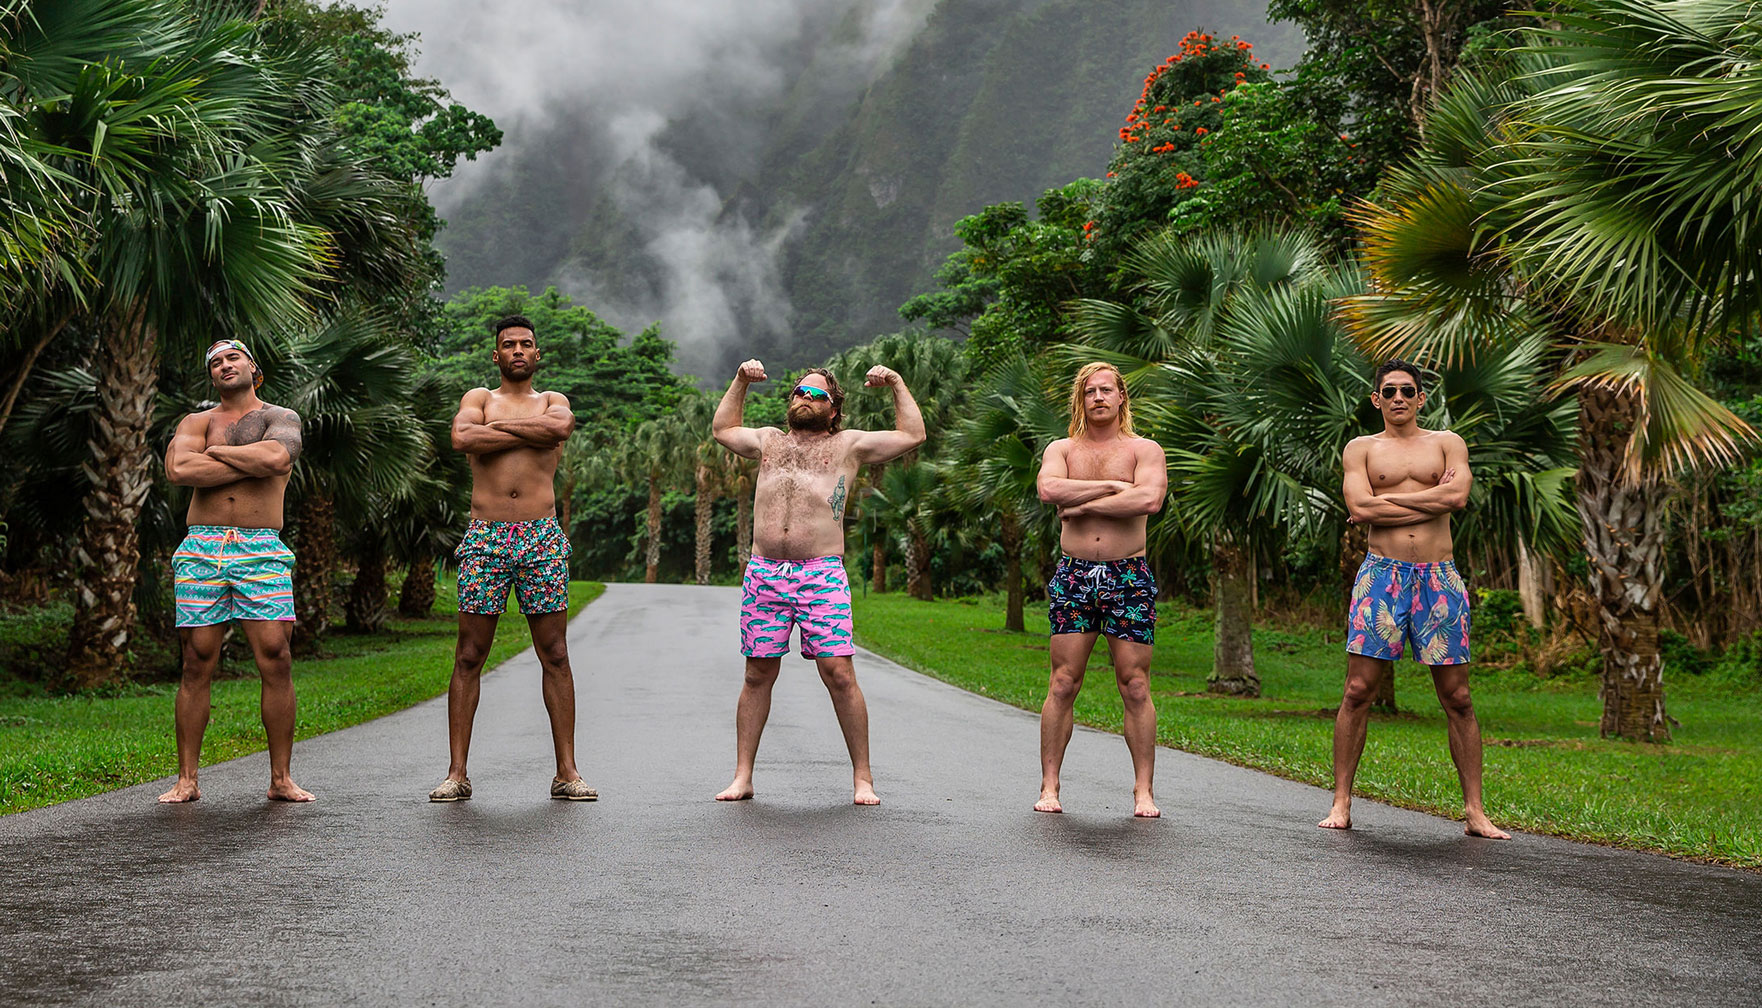 Sage_Chubbies_Imagery_Press_Release_header